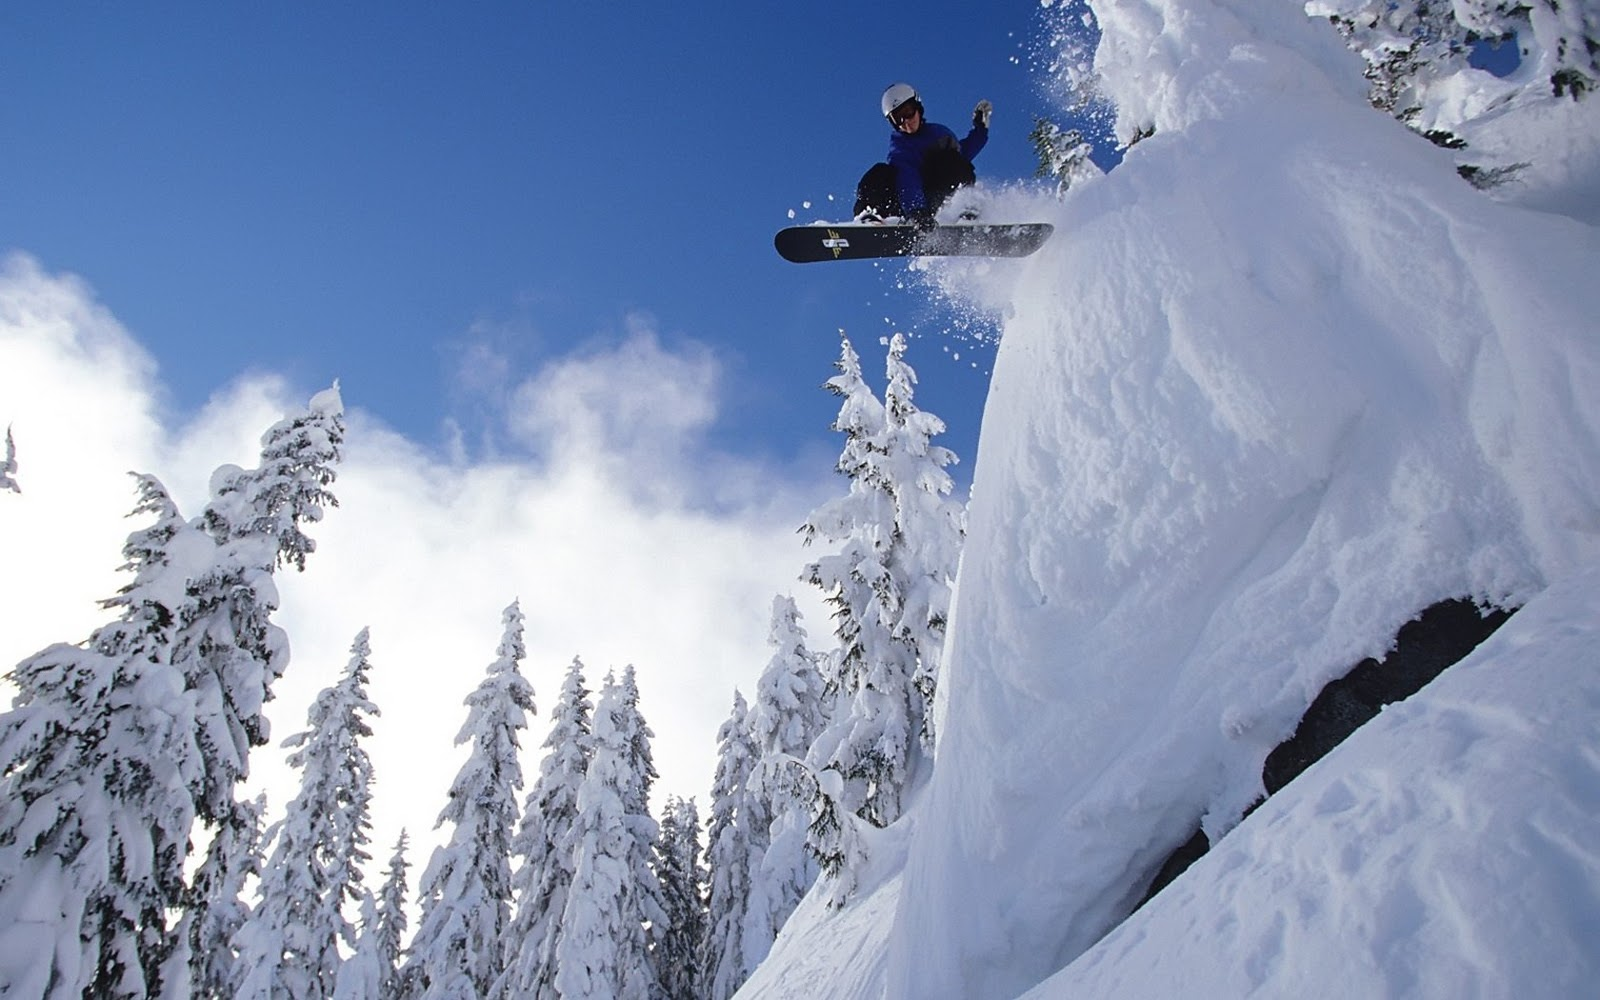 15 Cool Snowboarding Wallpapers | Snowboarding Days ...